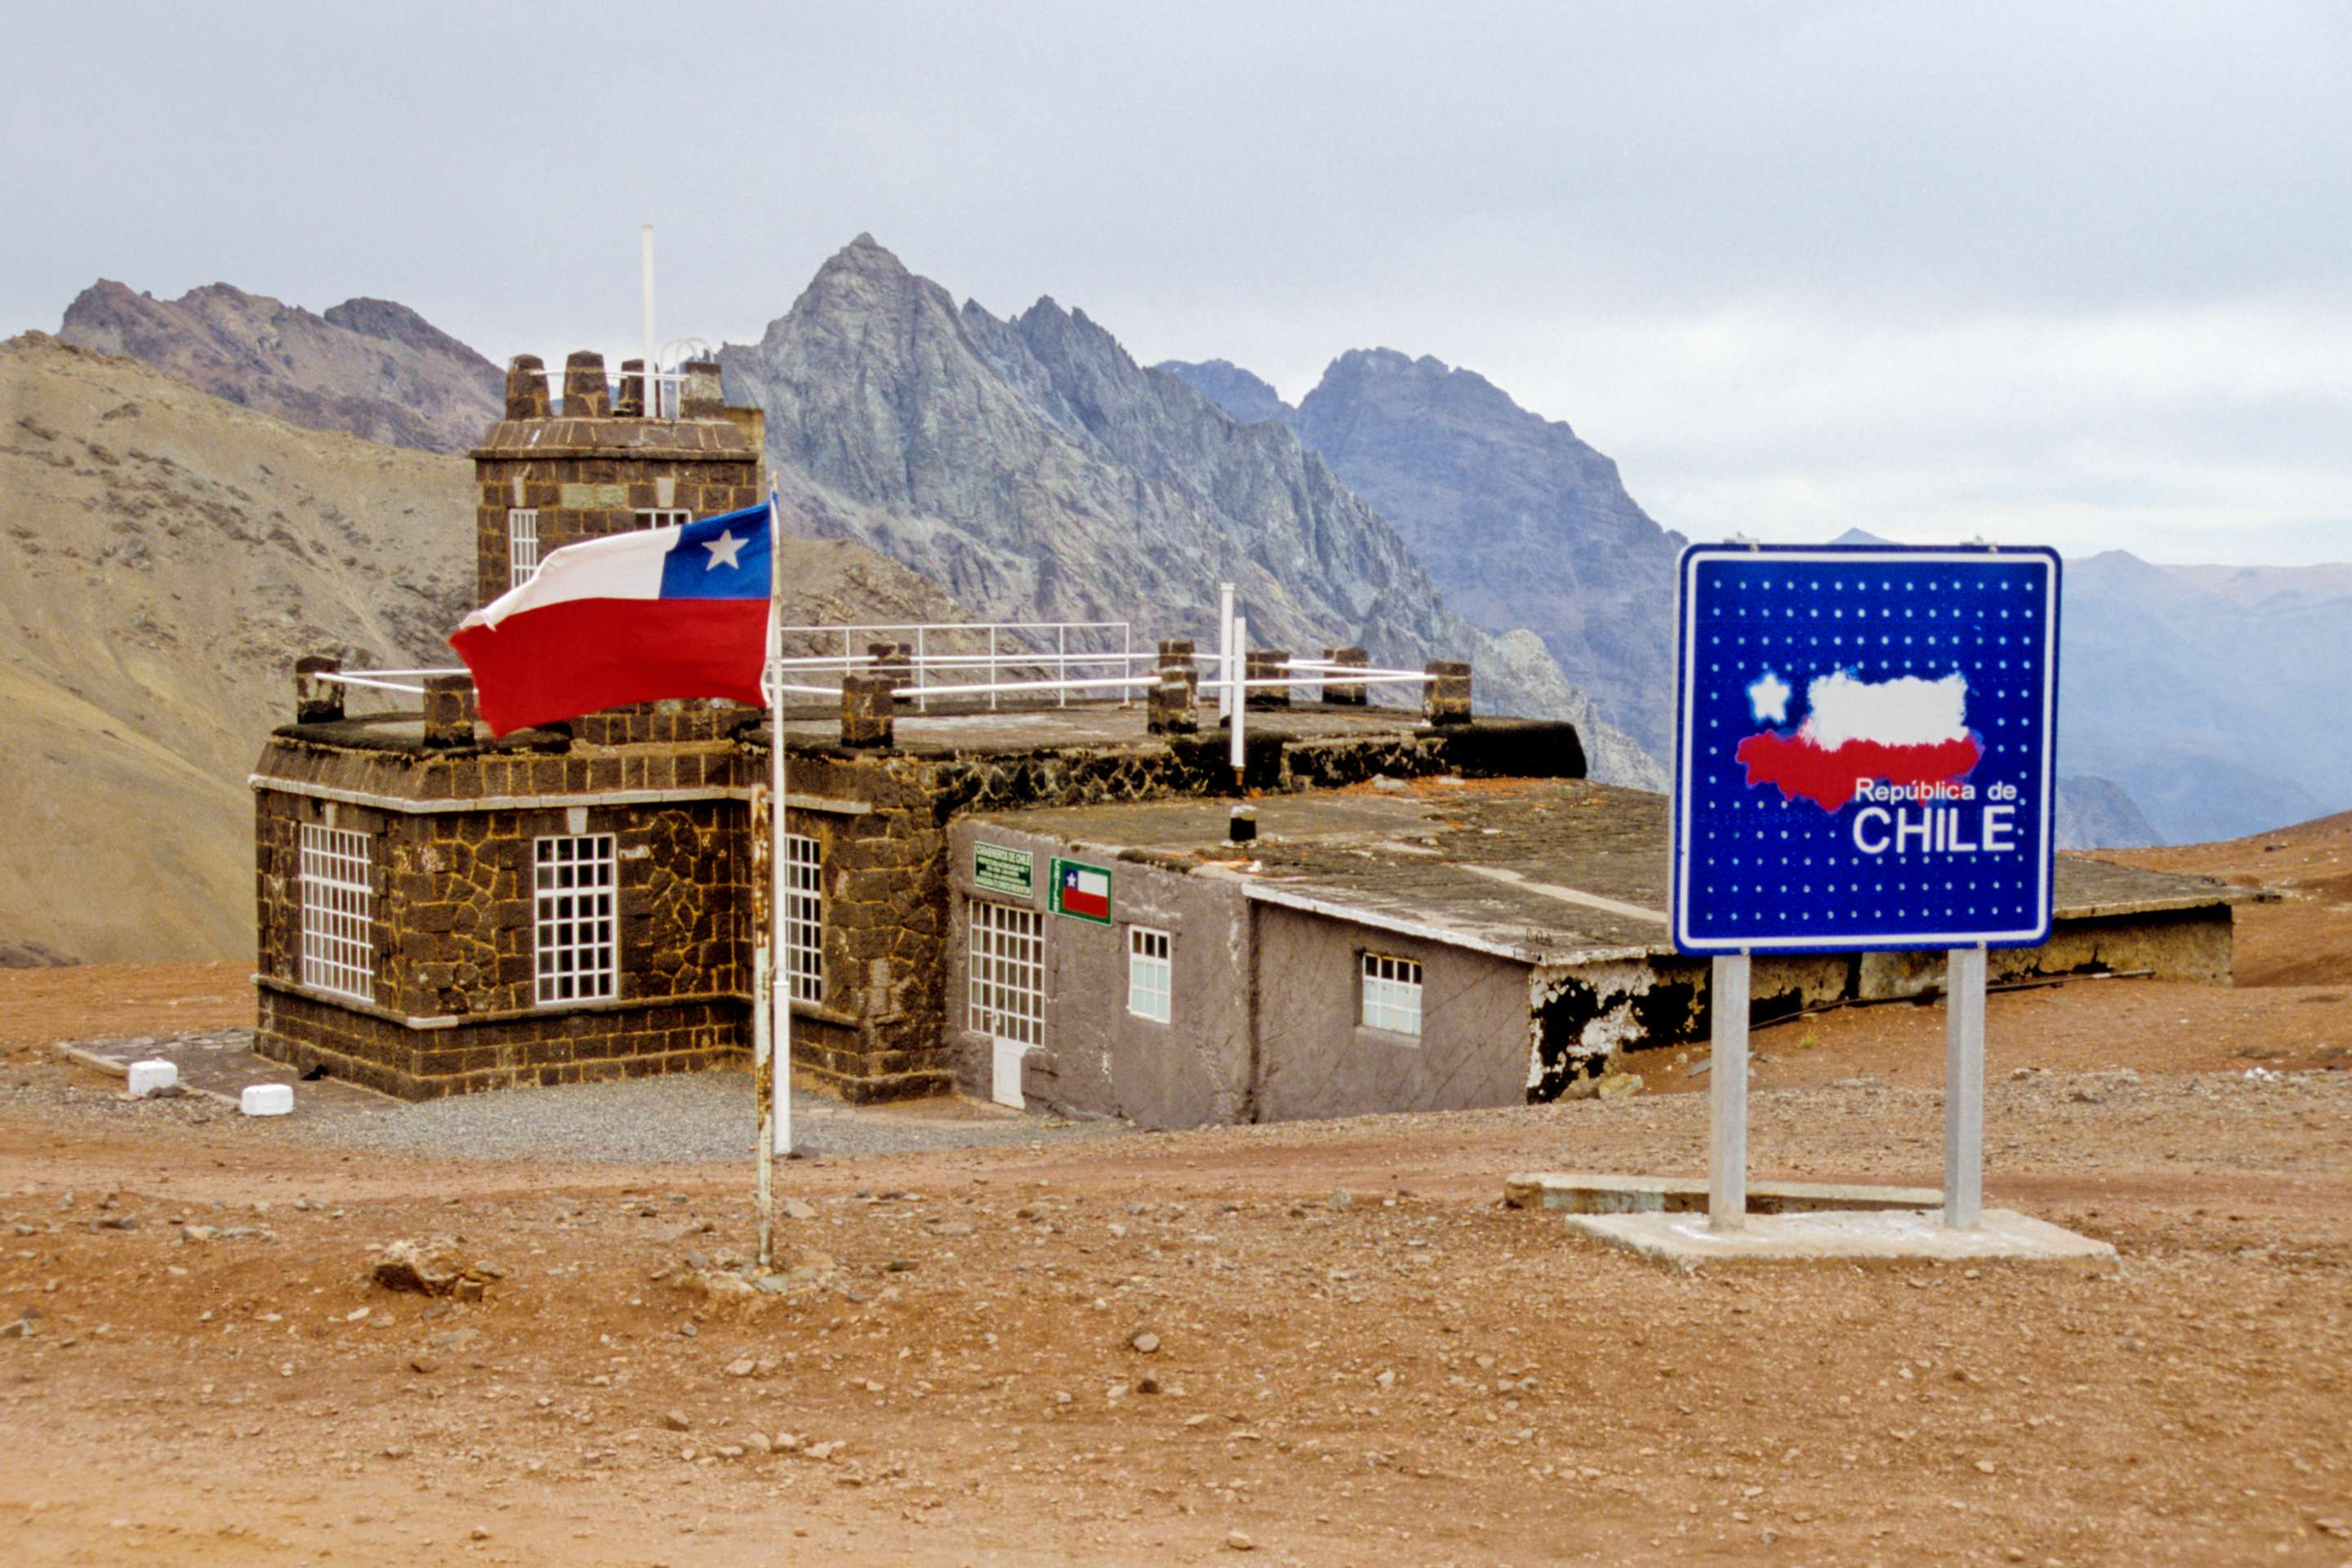 Chilean Mountain Station,pass,border,frontier,chile,flag,nature